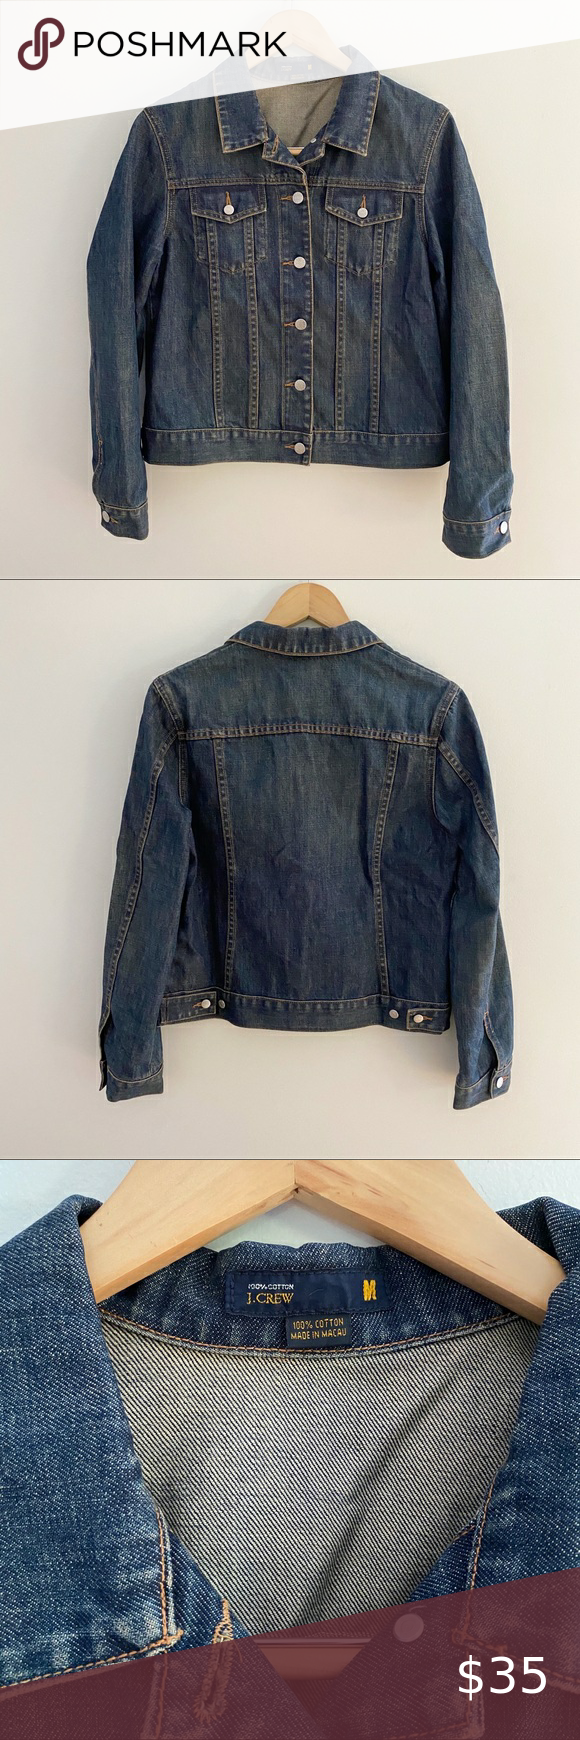 J. Crew Dark Wash Jean Jacket-Size Medium J. Crew